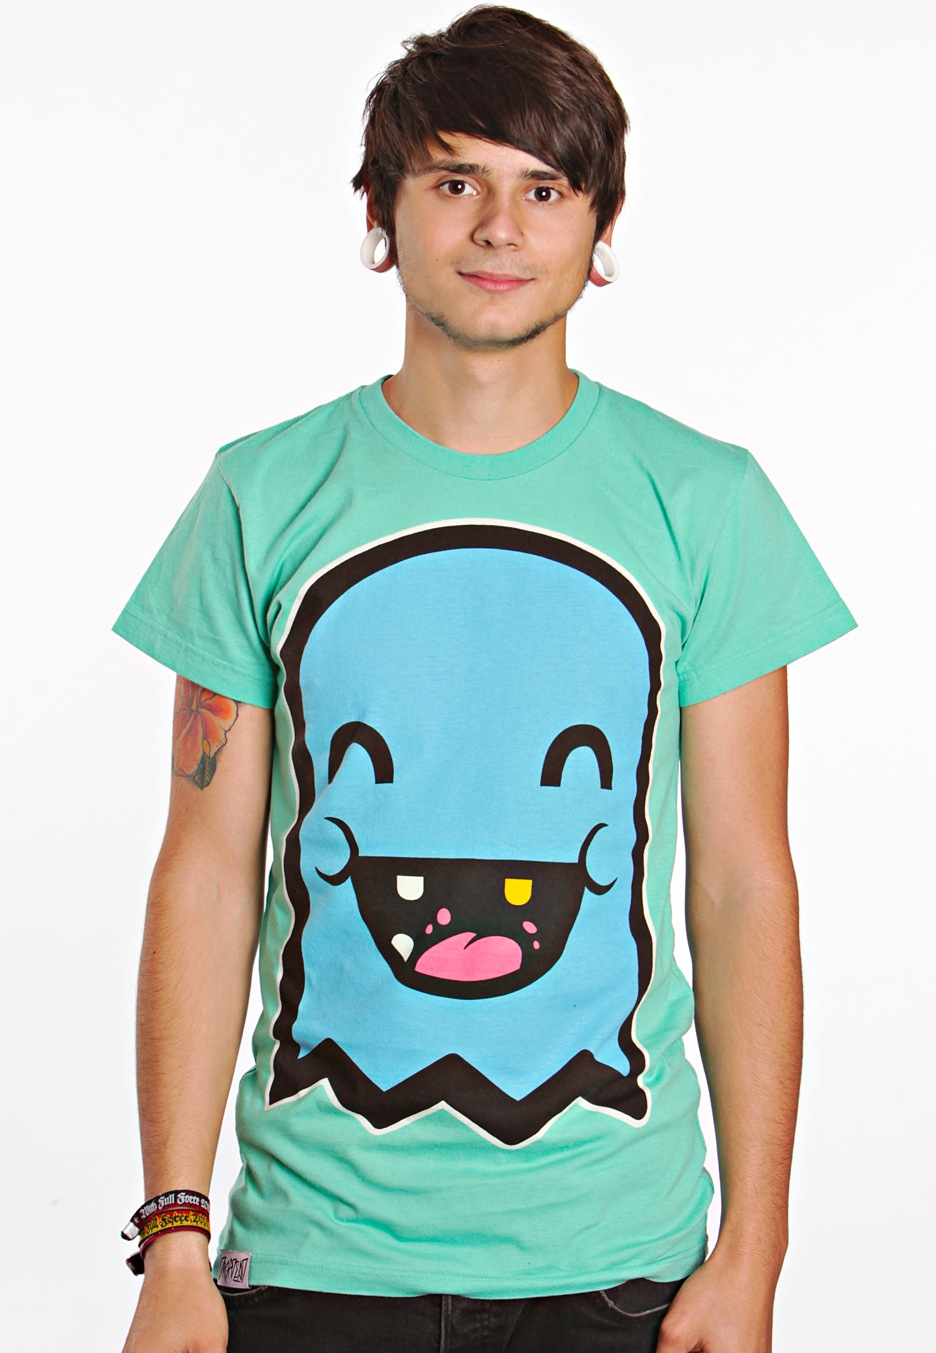 Drop Dead - Ghost Green - T-Shirt - Impericon.com WorldwideDrop Dead Clothing Ghost